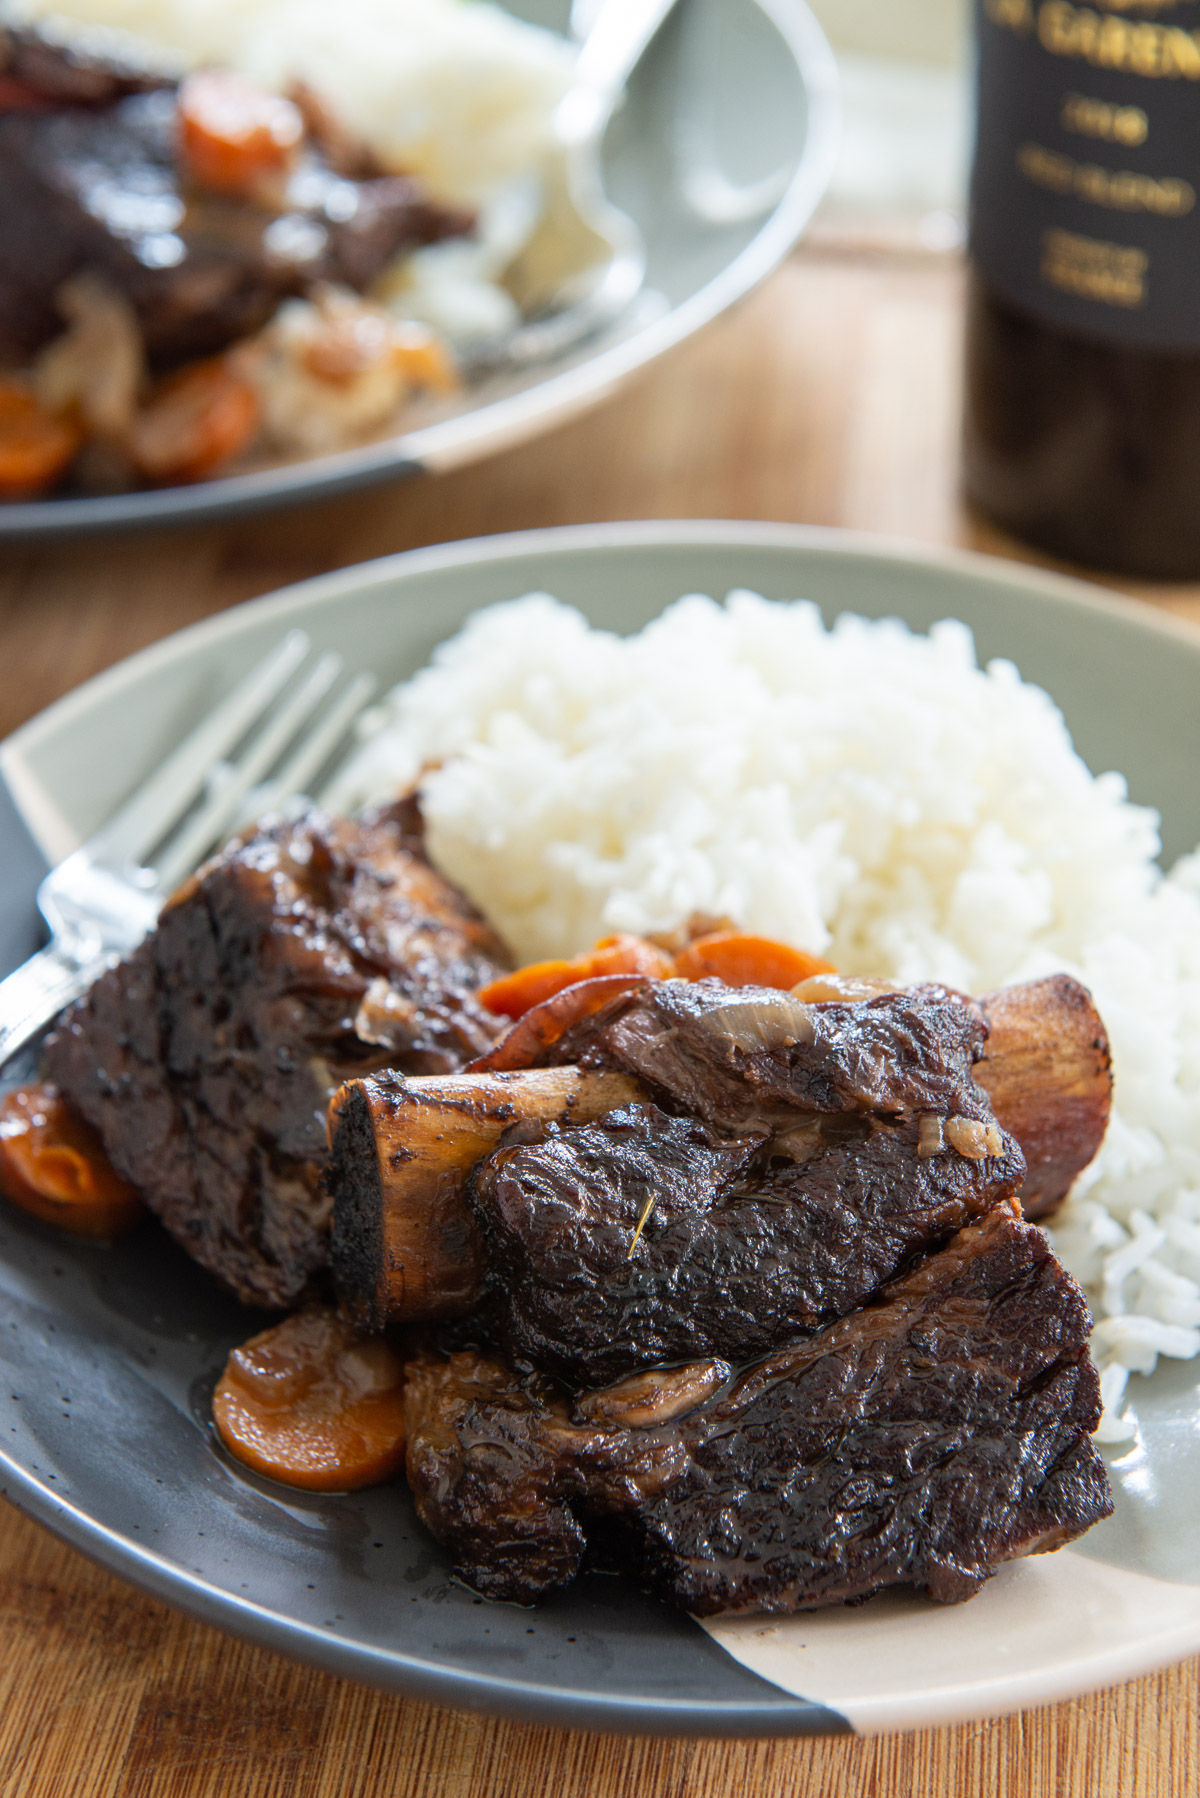 Slow Cooker Short Ribs On a Plate with White Rice